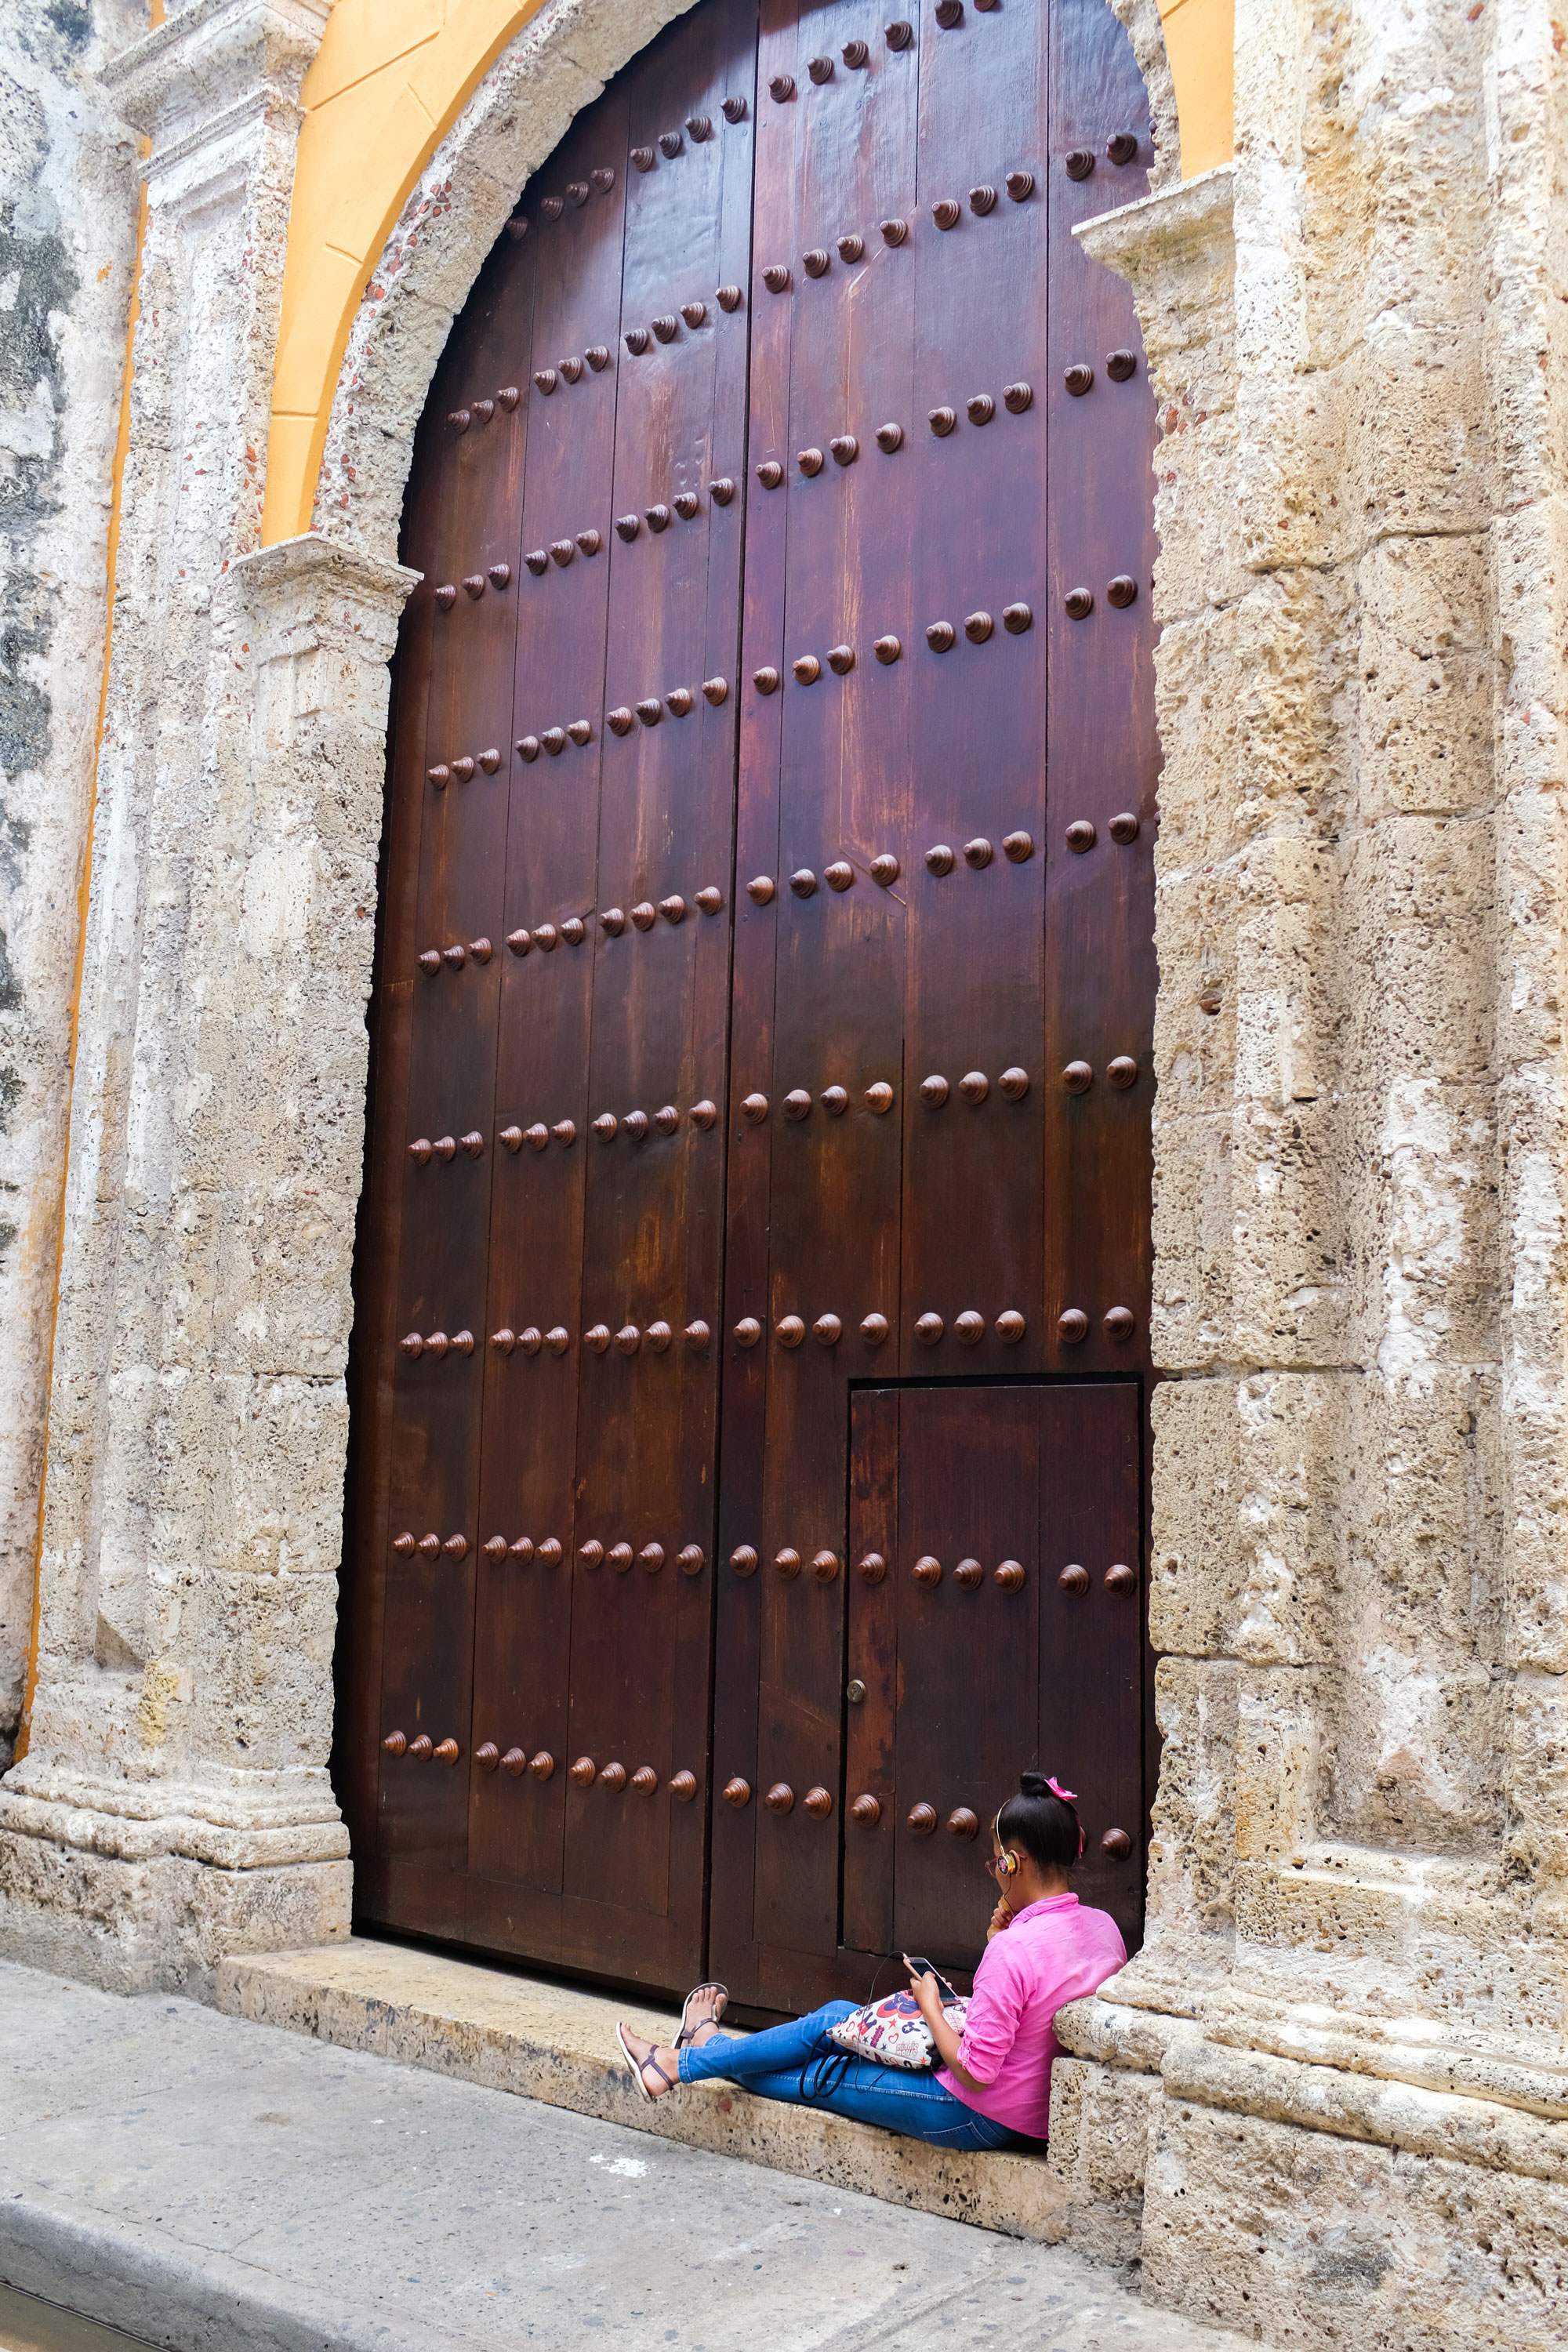 This door is part of the oldest church in Cartagena called Convento de Santo Domingo founded in 1551. That's so old to me. I wonder what that little door was for.